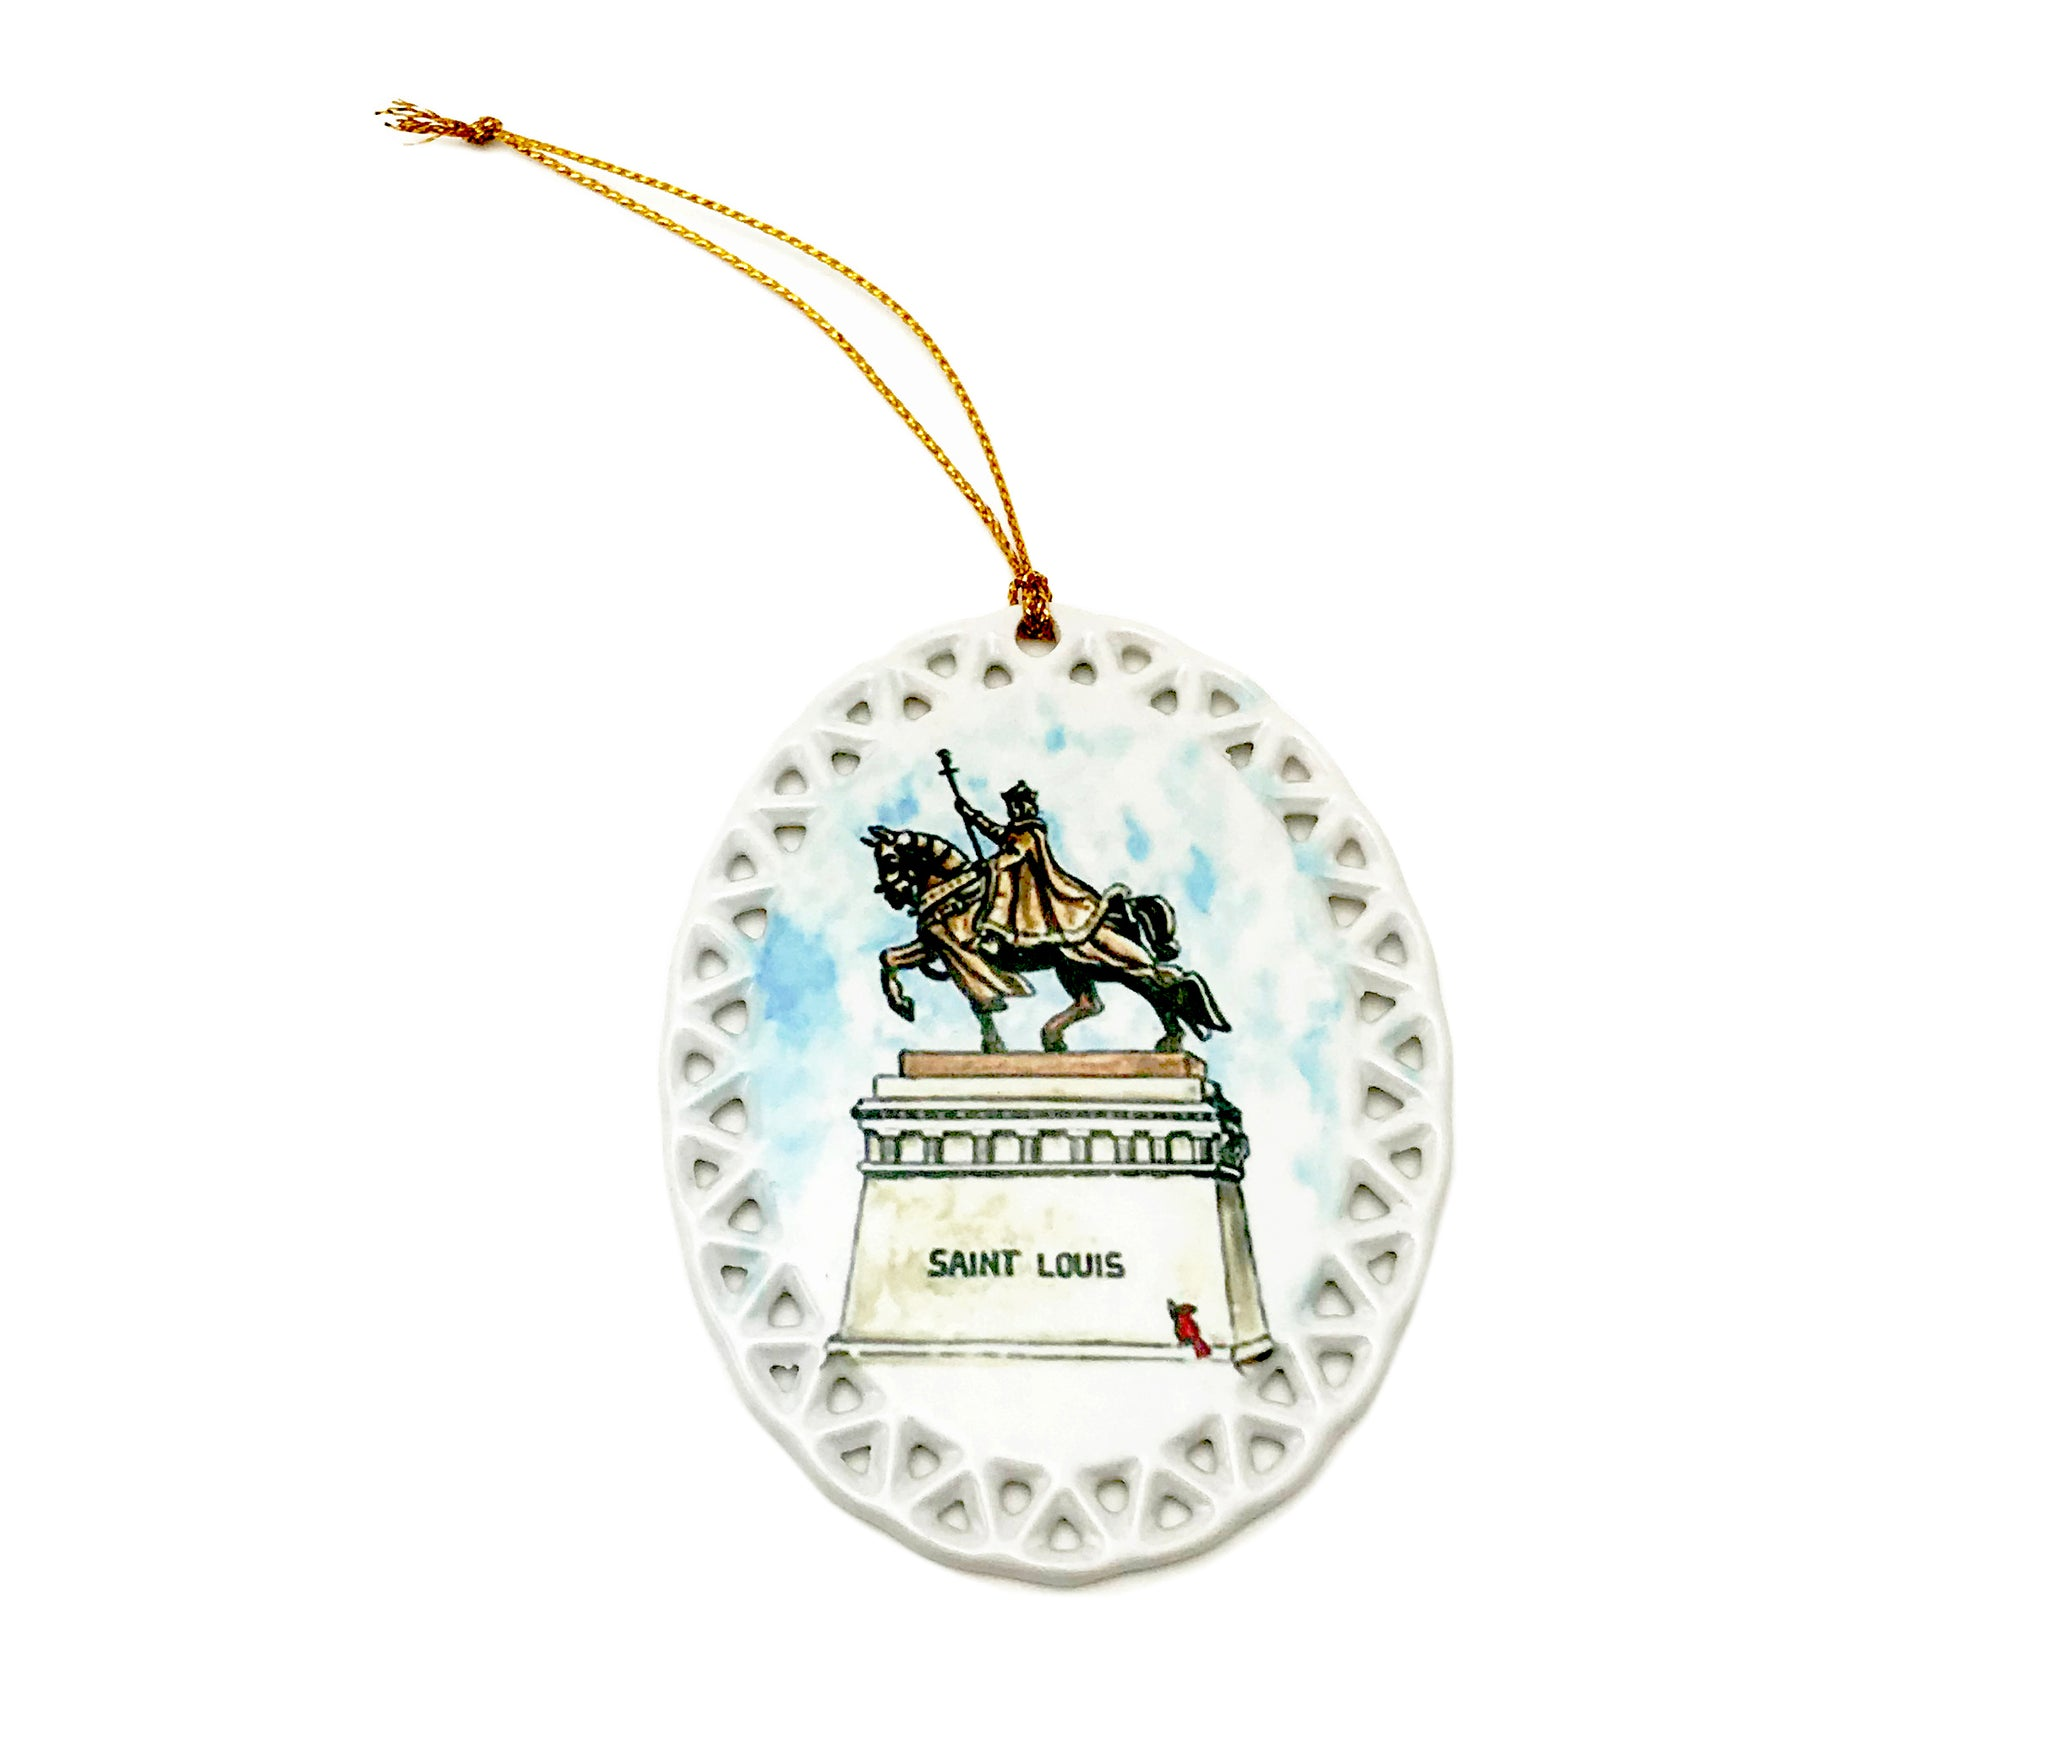 2017<br>Ceramic Ornament<br>Dated Limited Edition<br><br>Available Online and<br>at Retailers